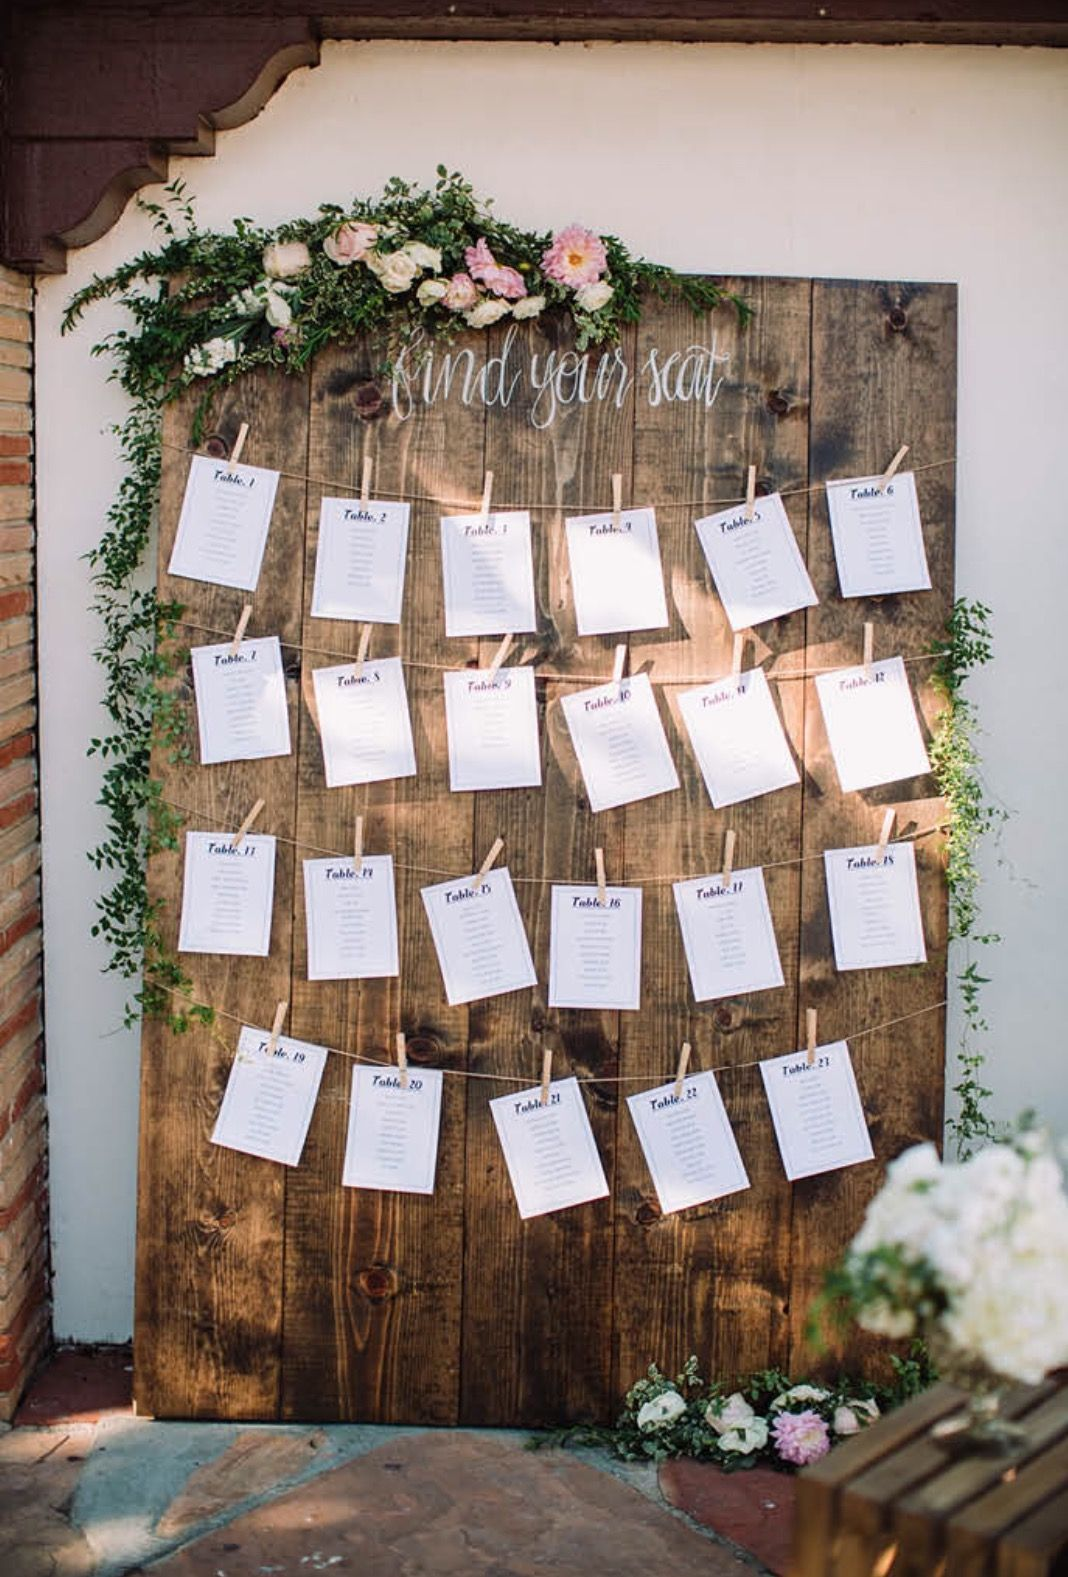 Miscellaneavintagerentals wedding seating chart ideas large farm wood find your seat for muckenthaler mansion venue also rh pinterest